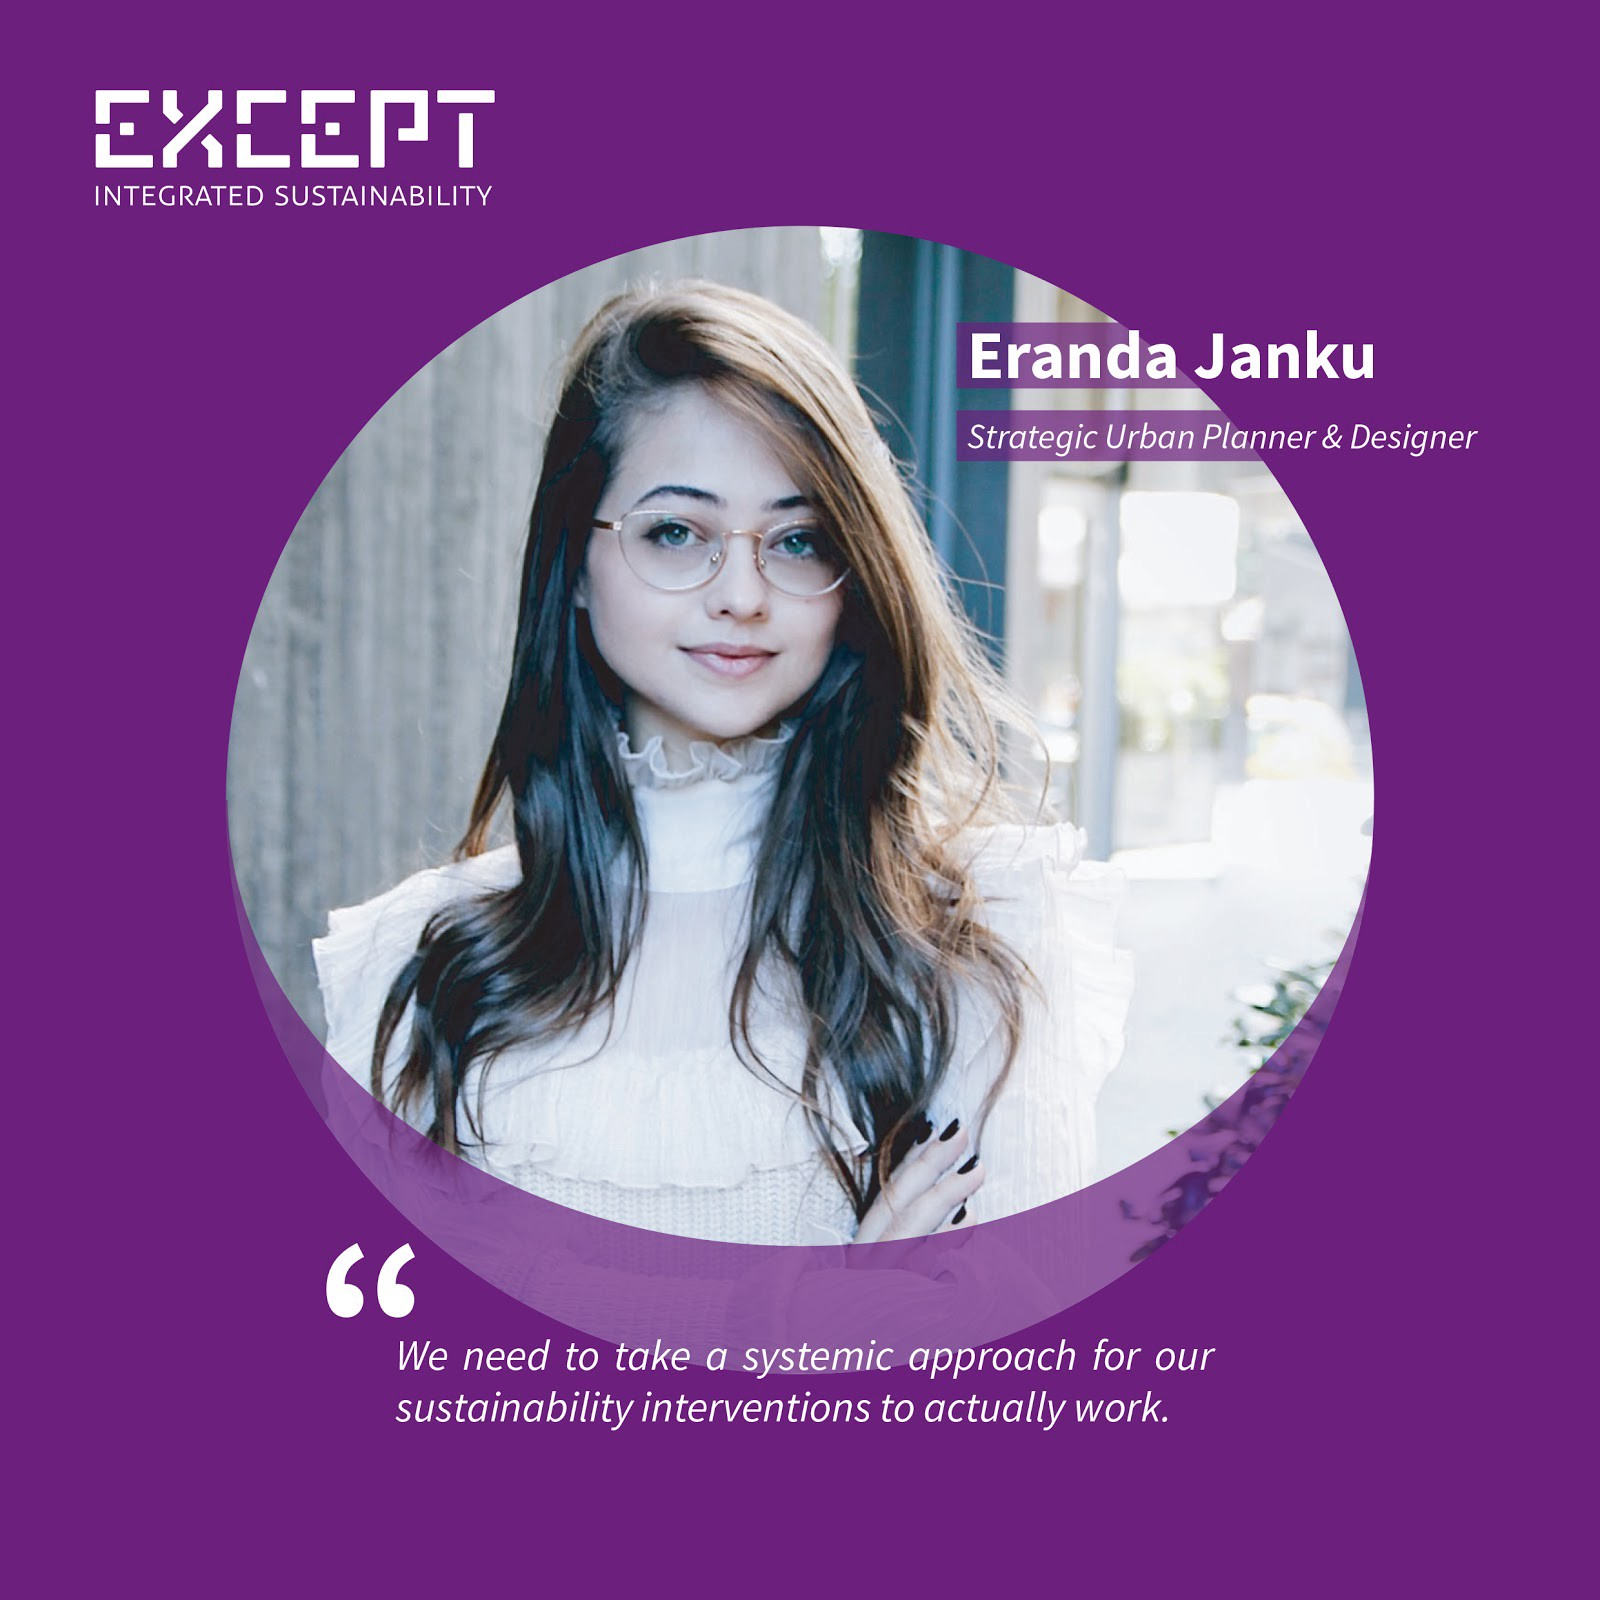 A portrait of sustainable urban planner Eranda Janku with Except Integrated Sustainability's logo